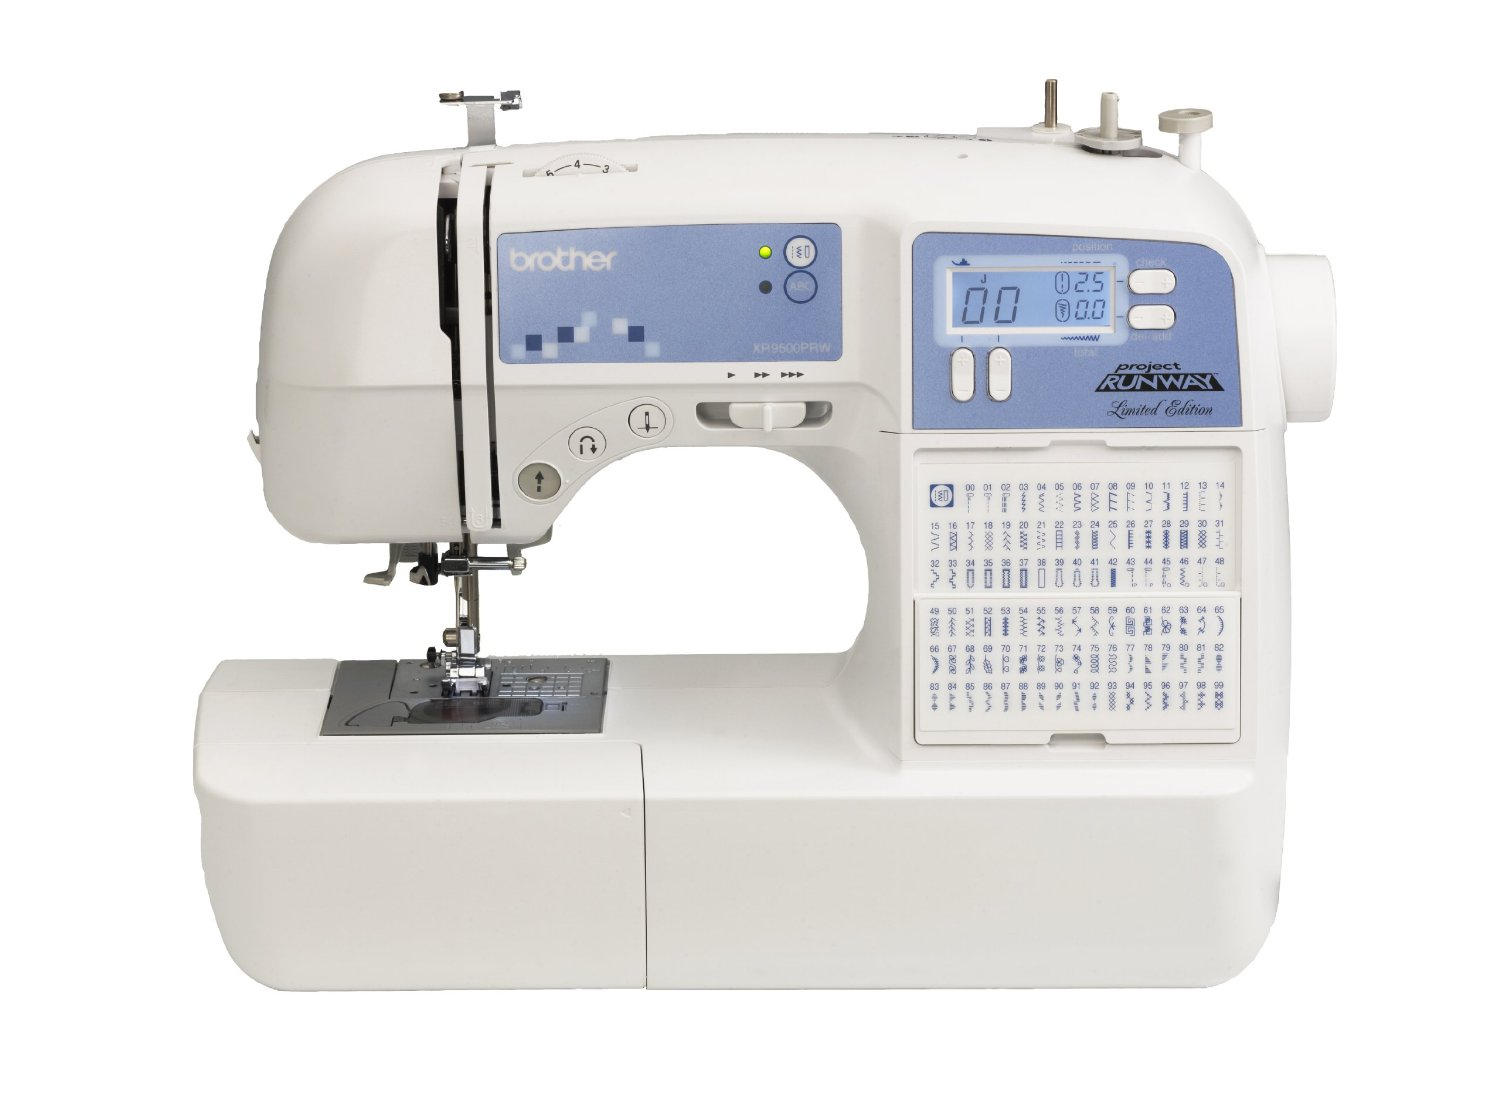 brother_sewingmachine